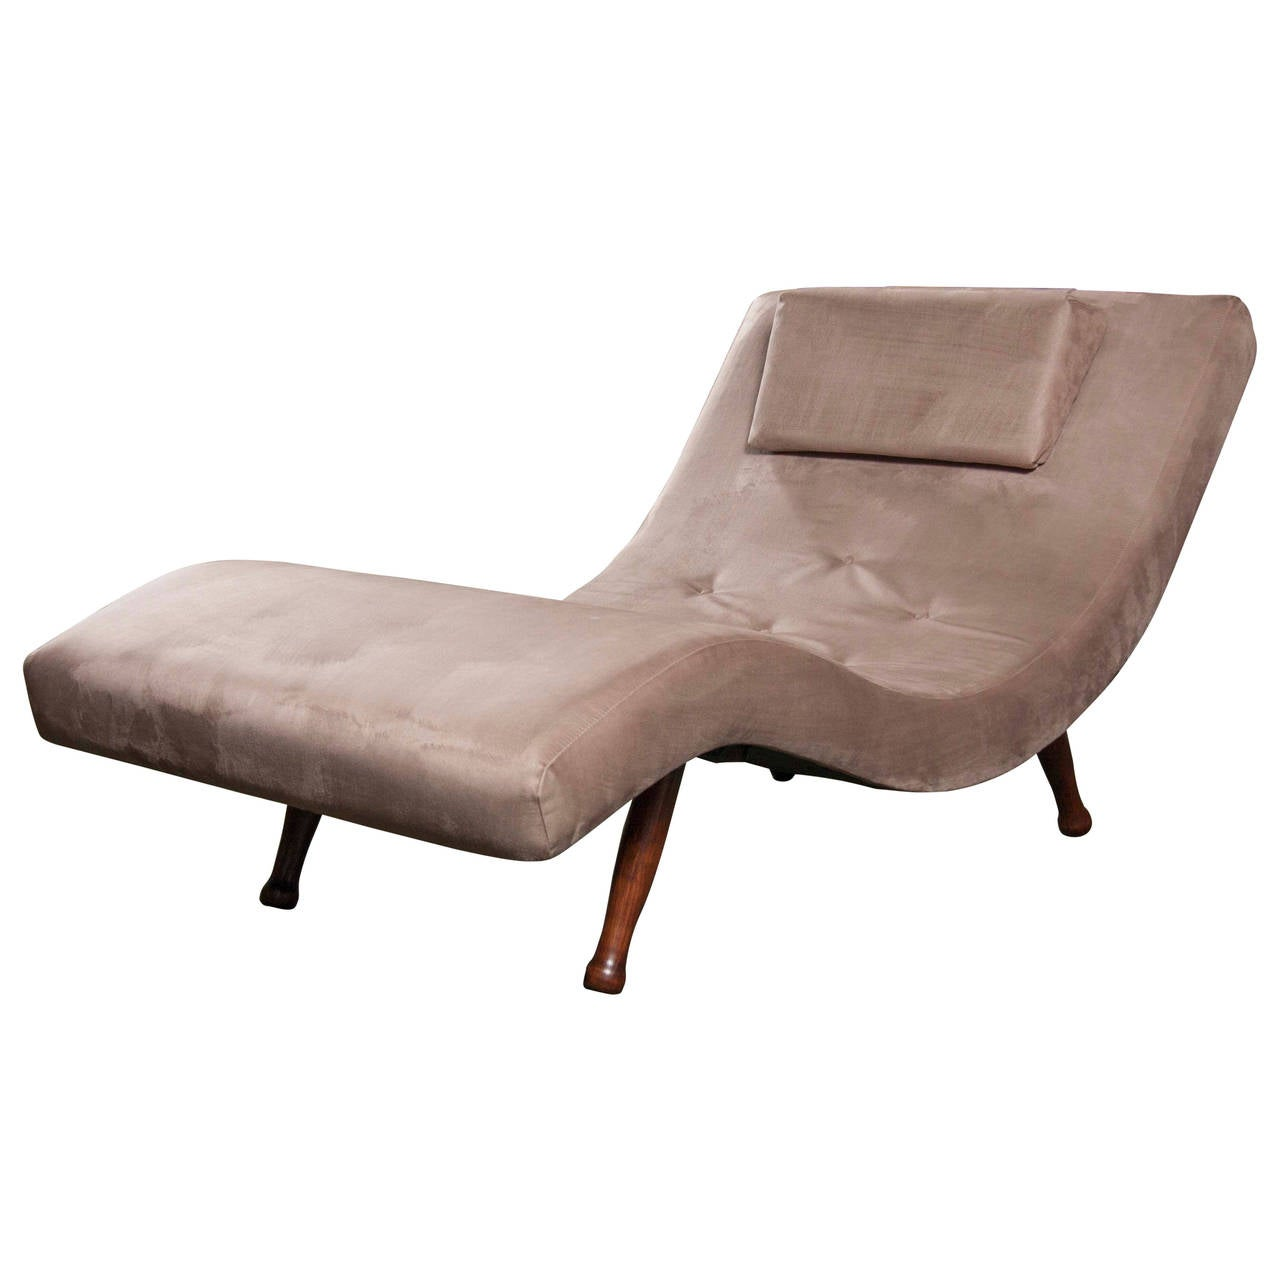 Chaise longue by adrian pearsall for sale at 1stdibs for Chaise for sale